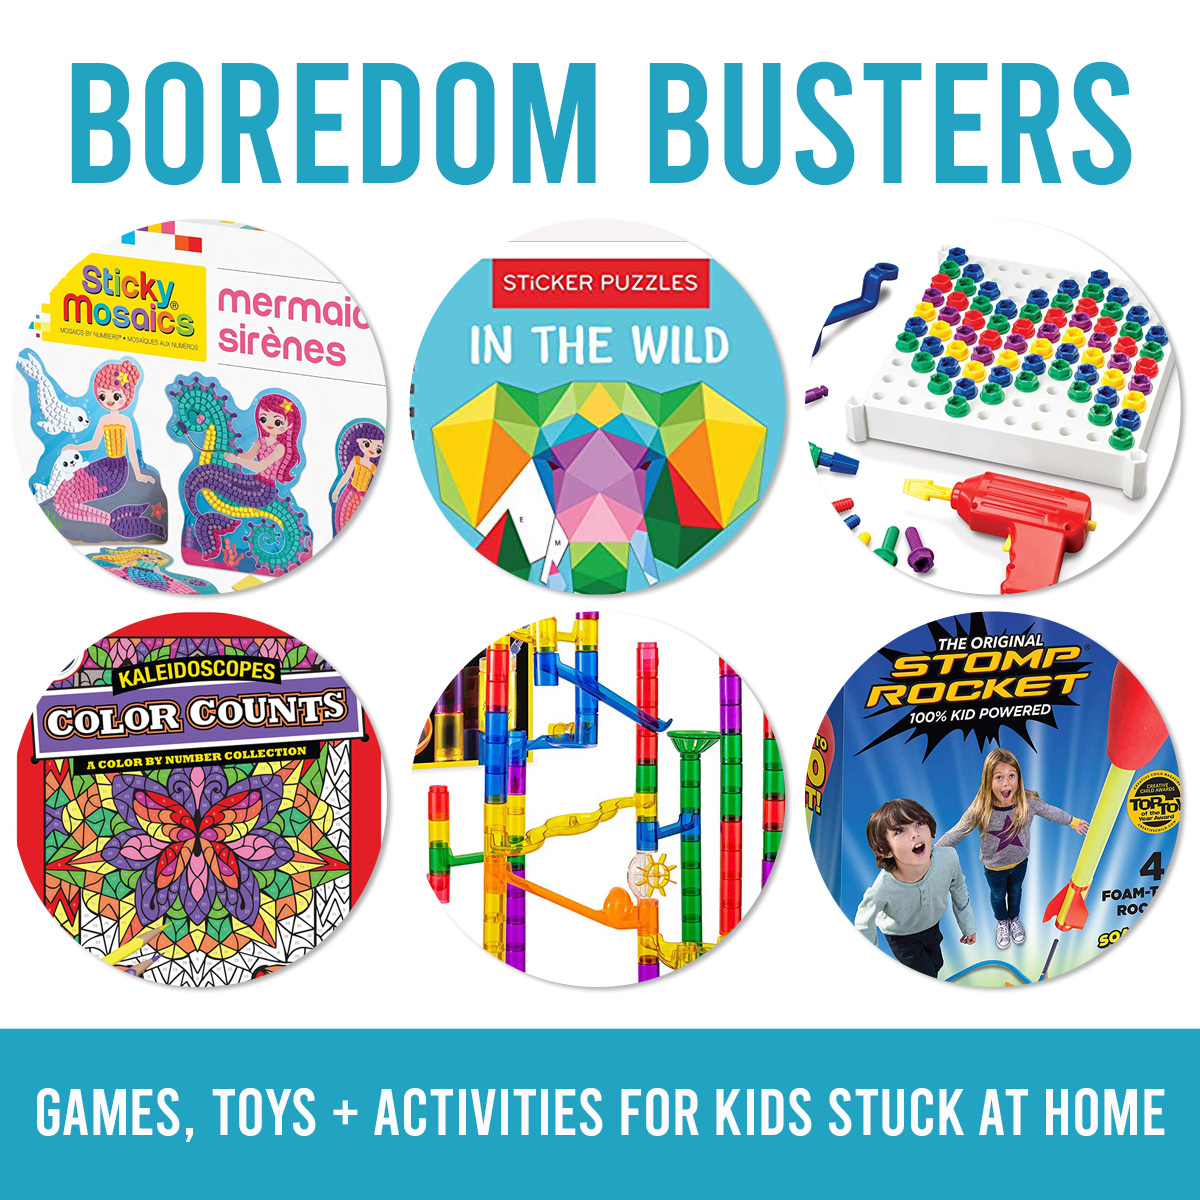 Boredom acne for children stuck at home (games, toys, books, etc.)